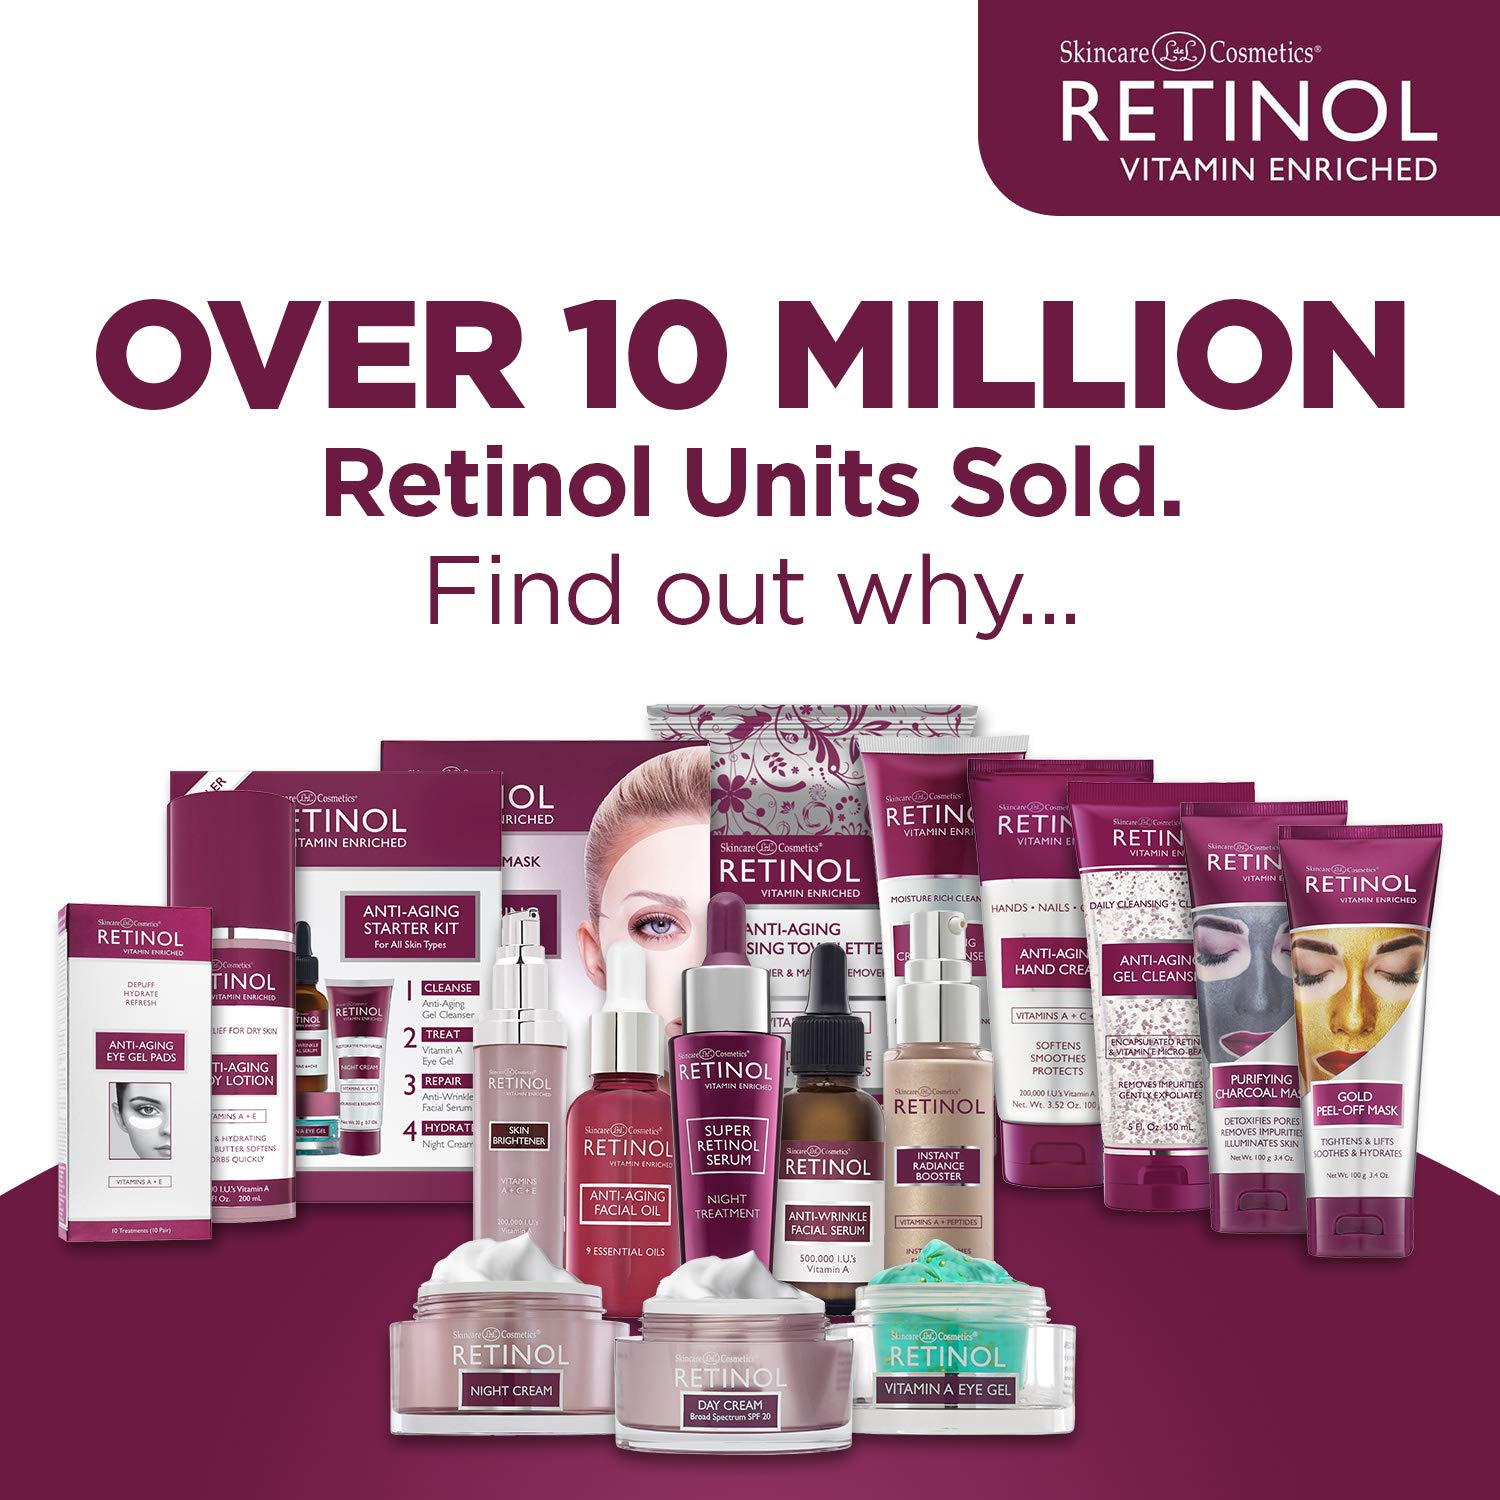 Retinol Anti-Wrinkle Facial Serum - Vitamin A Concentrate Improves Skin's Elasticity & Tone and Minimizes Appearance of Fine Lines & Wrinkles - Look Younger With The Age-Defying Power Of Retinol by Retinol